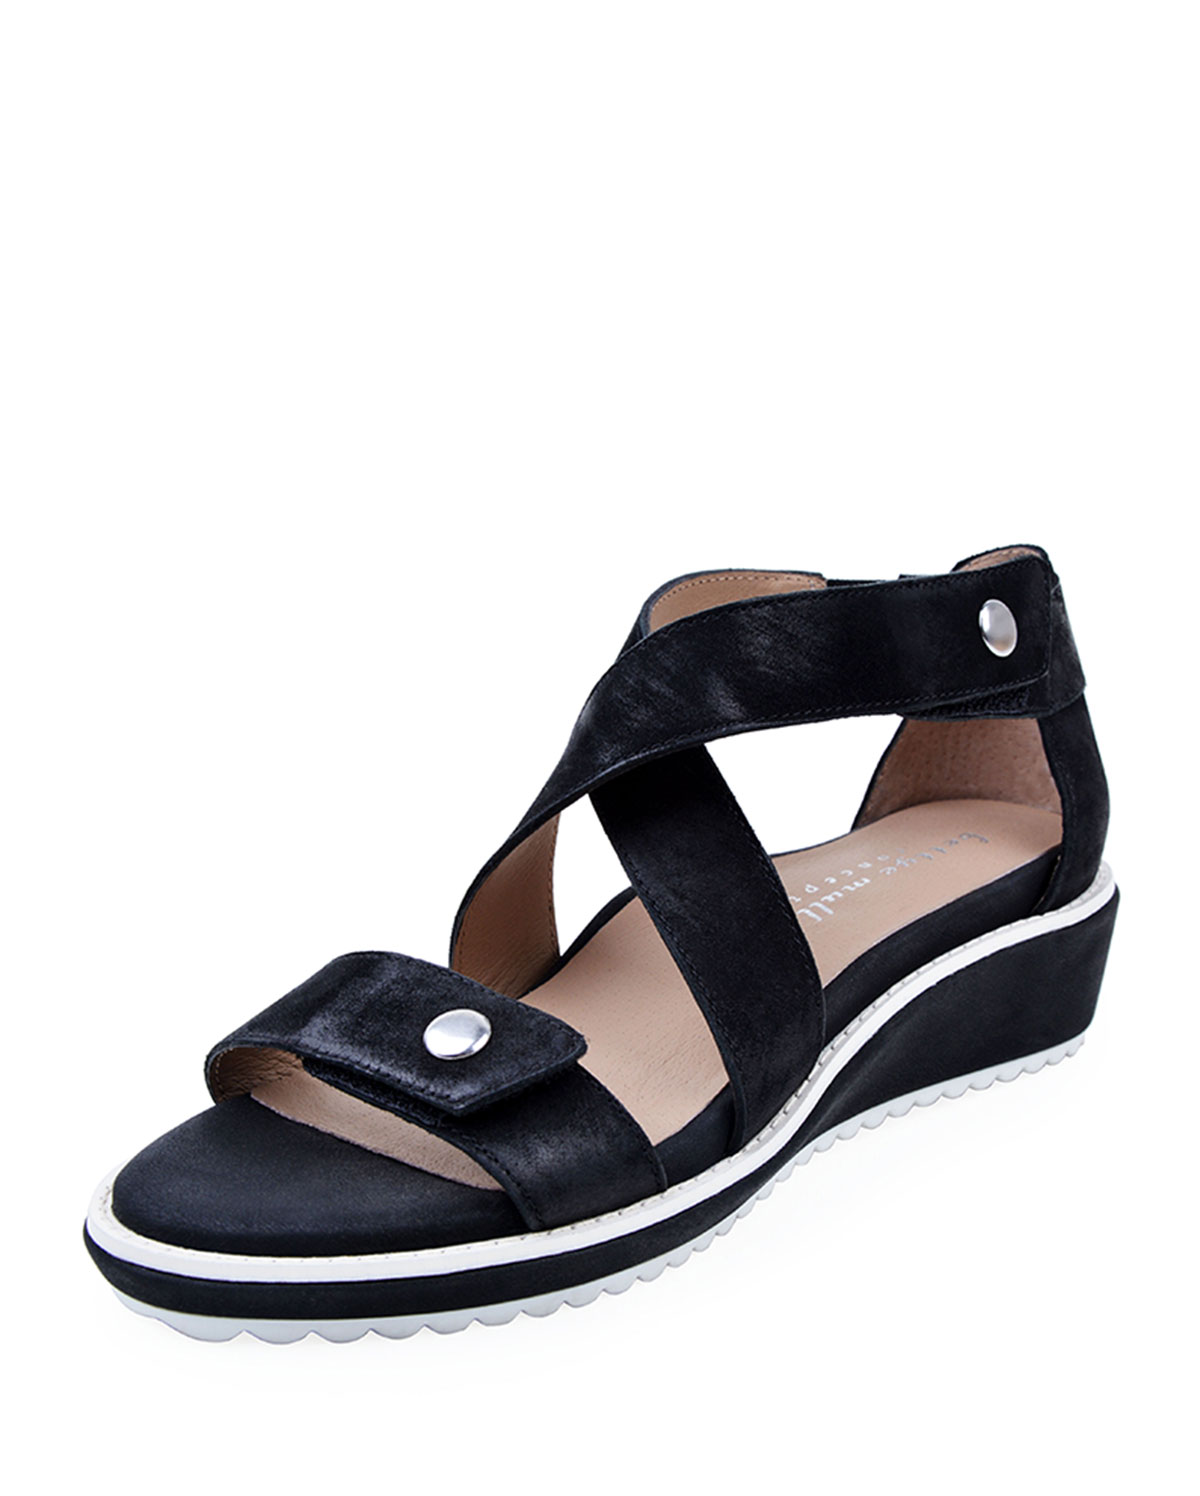 Tobi Leather Demi-Wedge Sandals, Black